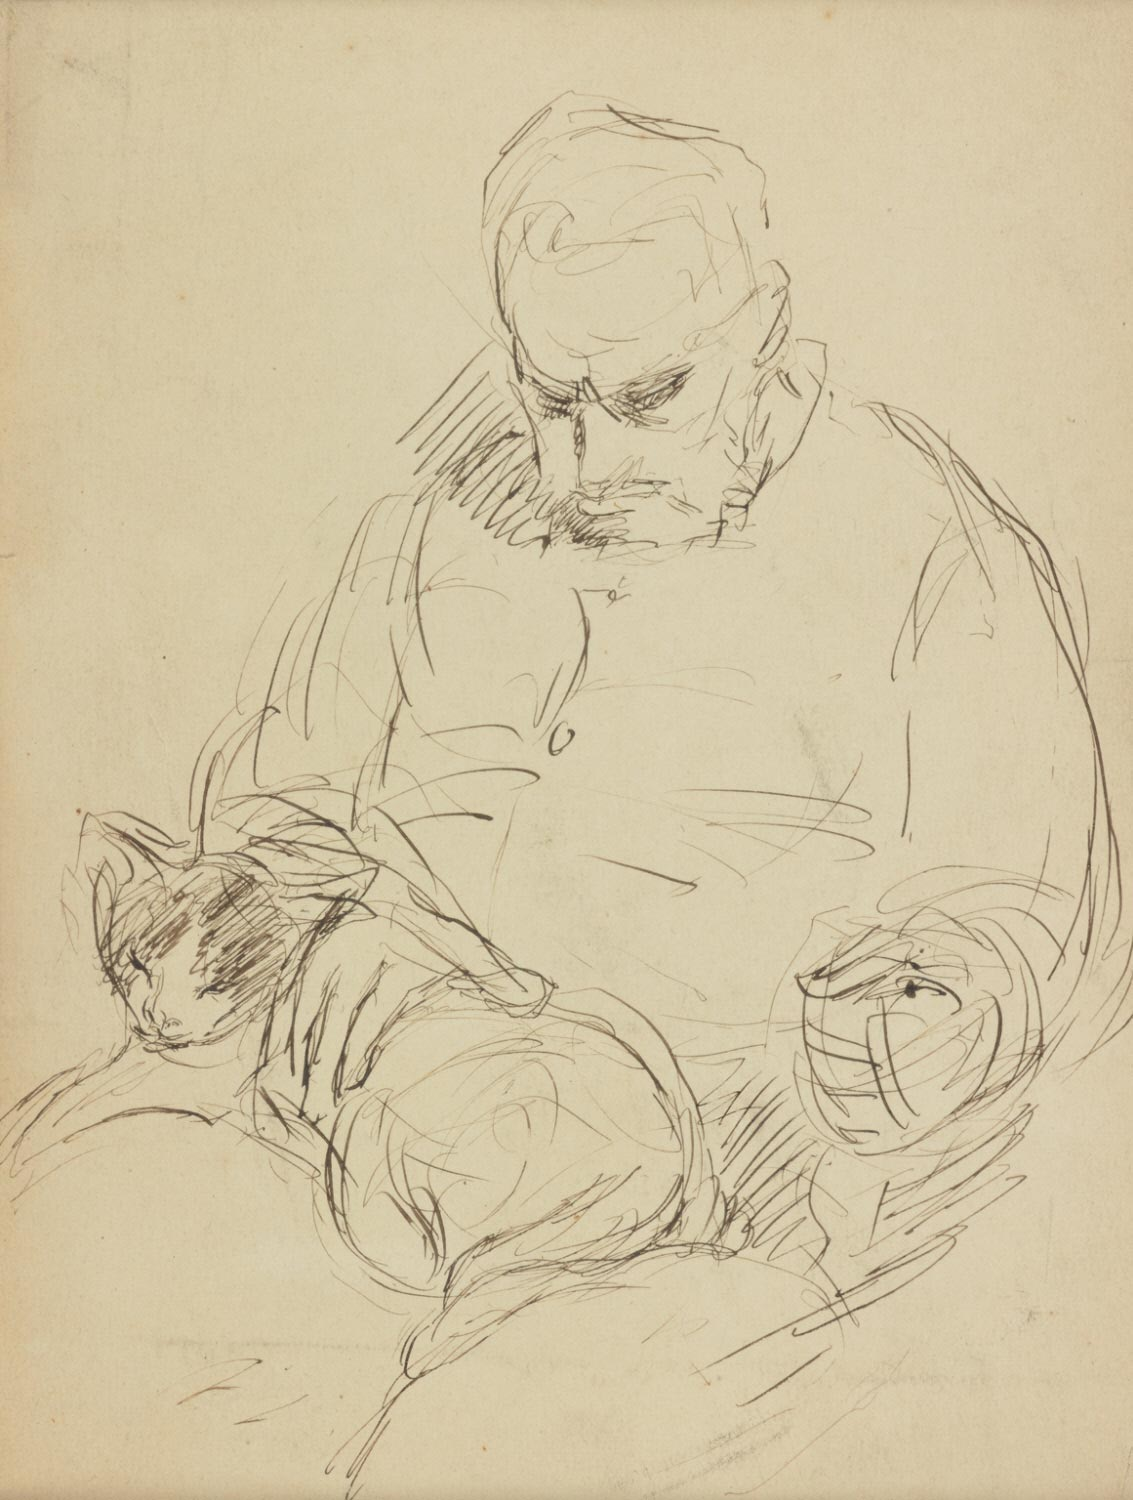 Sketch of Thomas Eakins (Double-sided)